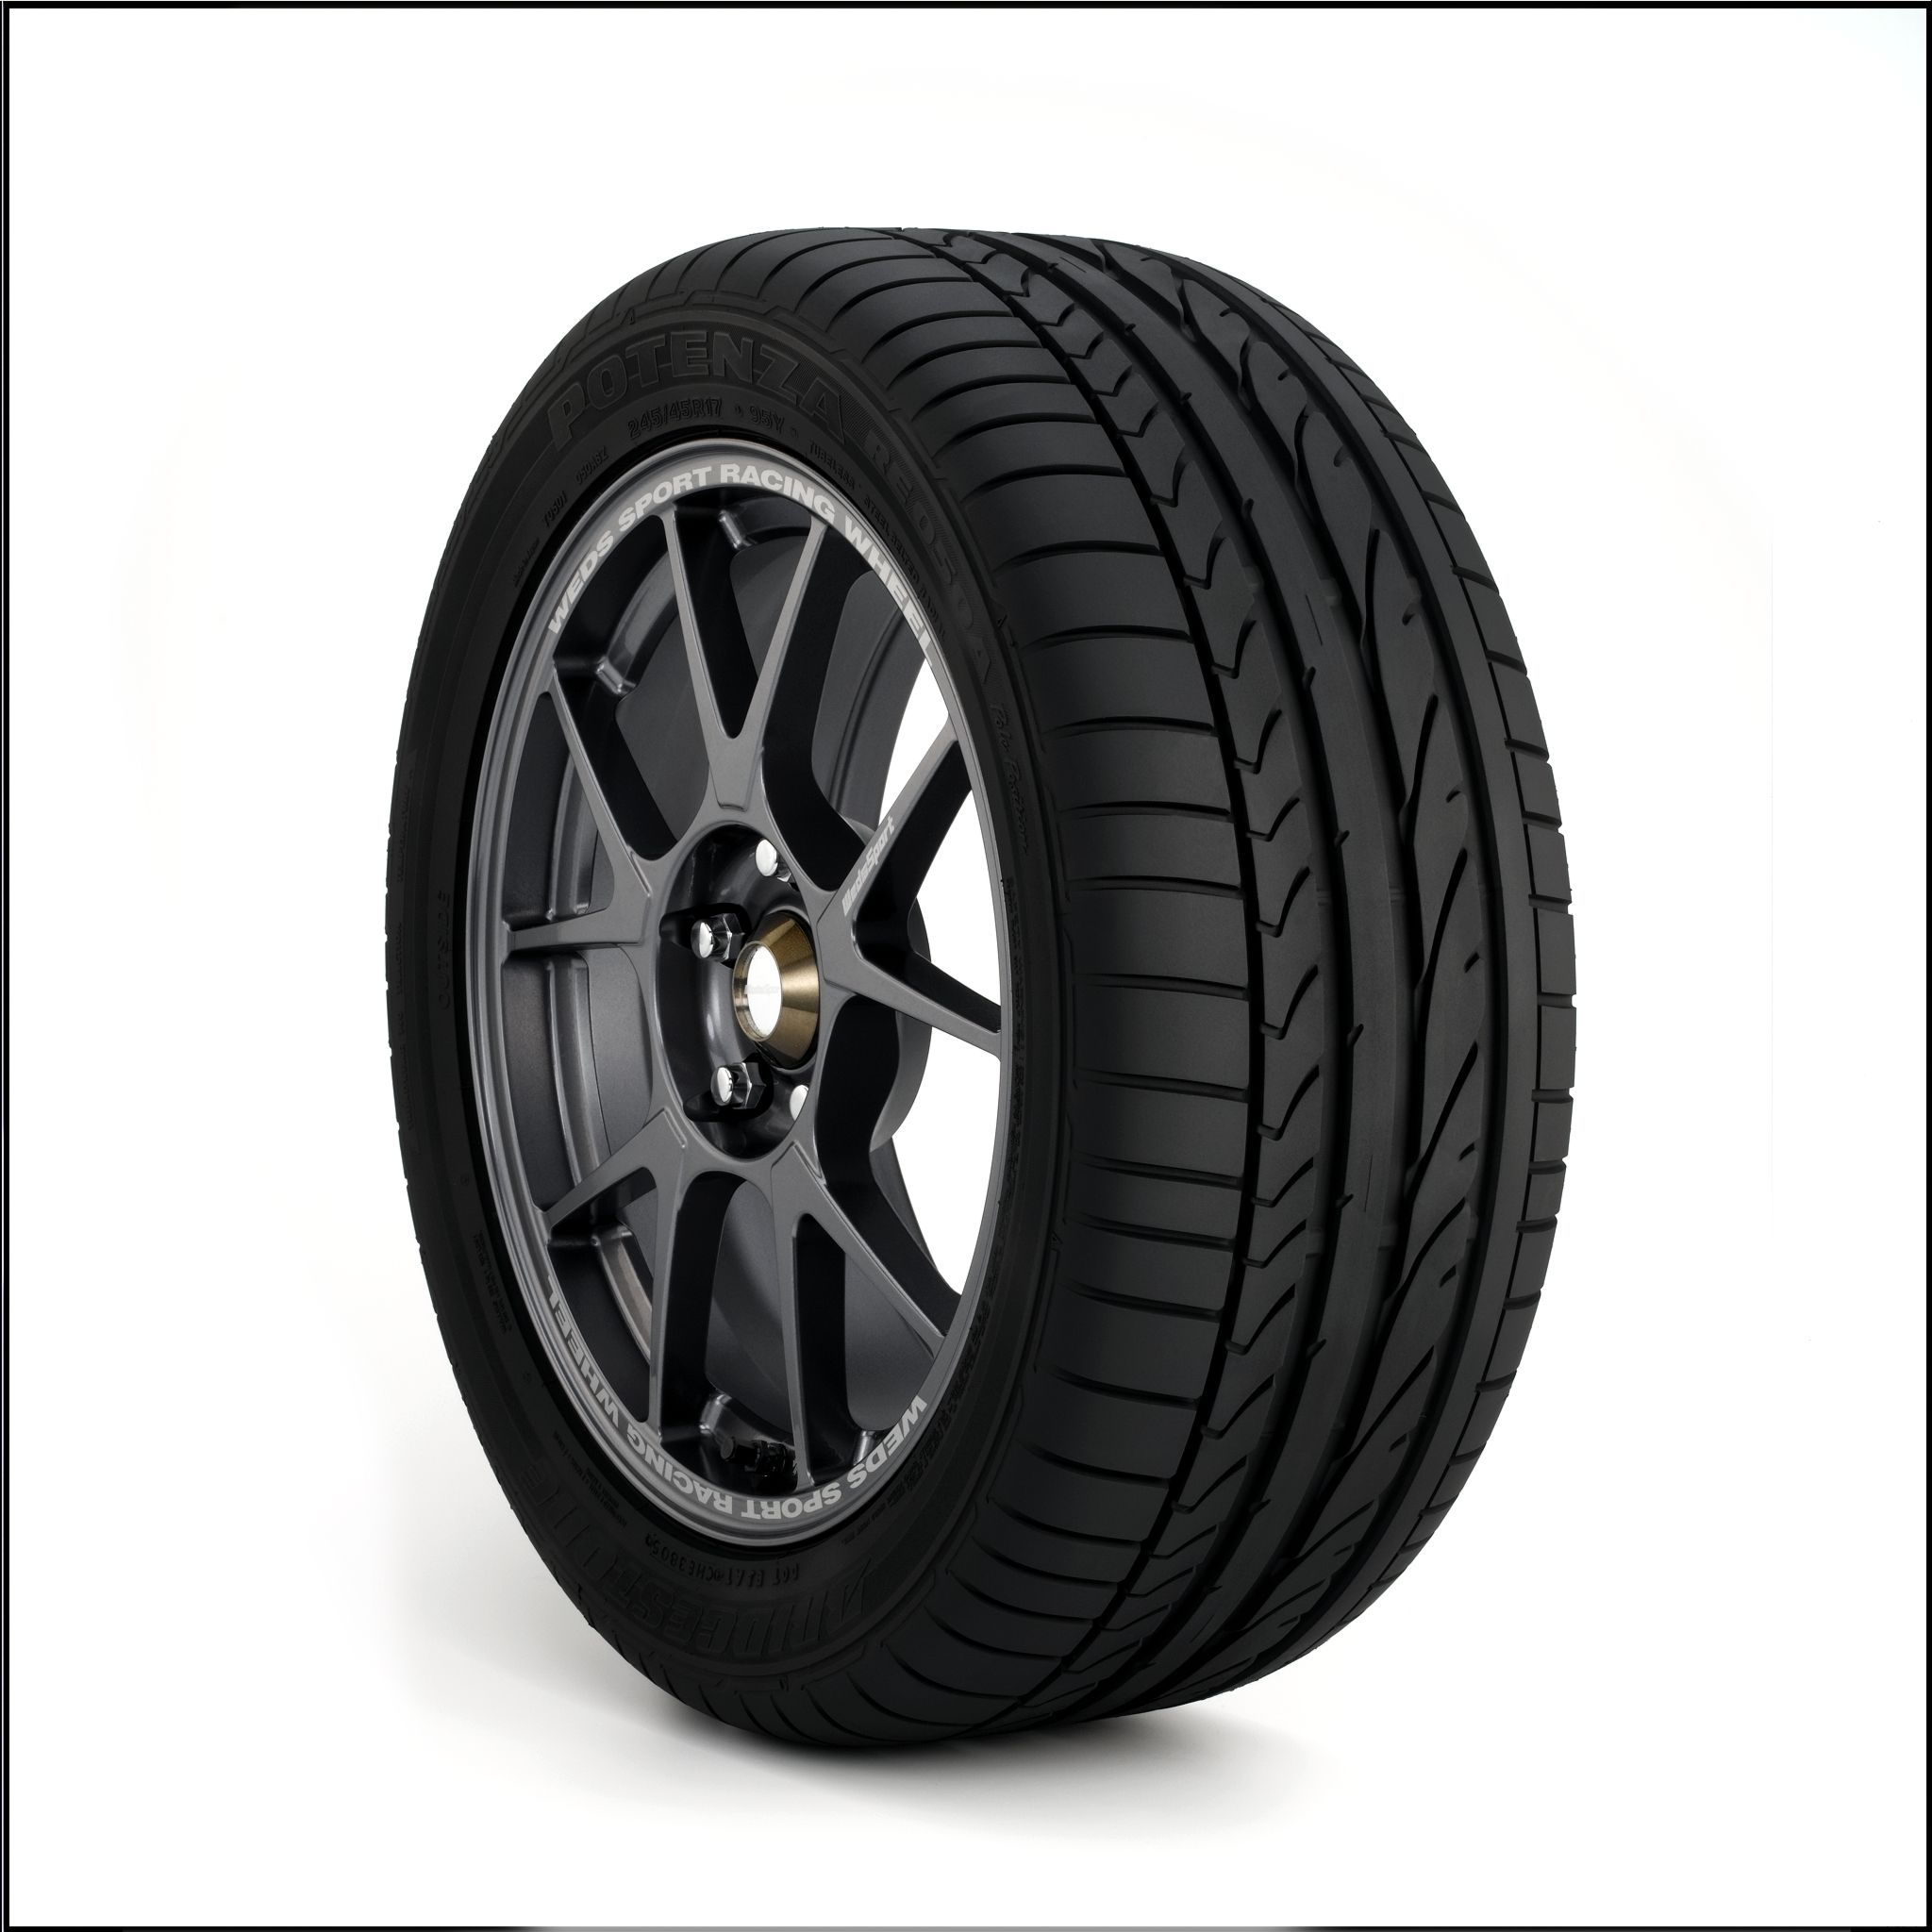 new run flat tires for sale best tire prices tires. Black Bedroom Furniture Sets. Home Design Ideas